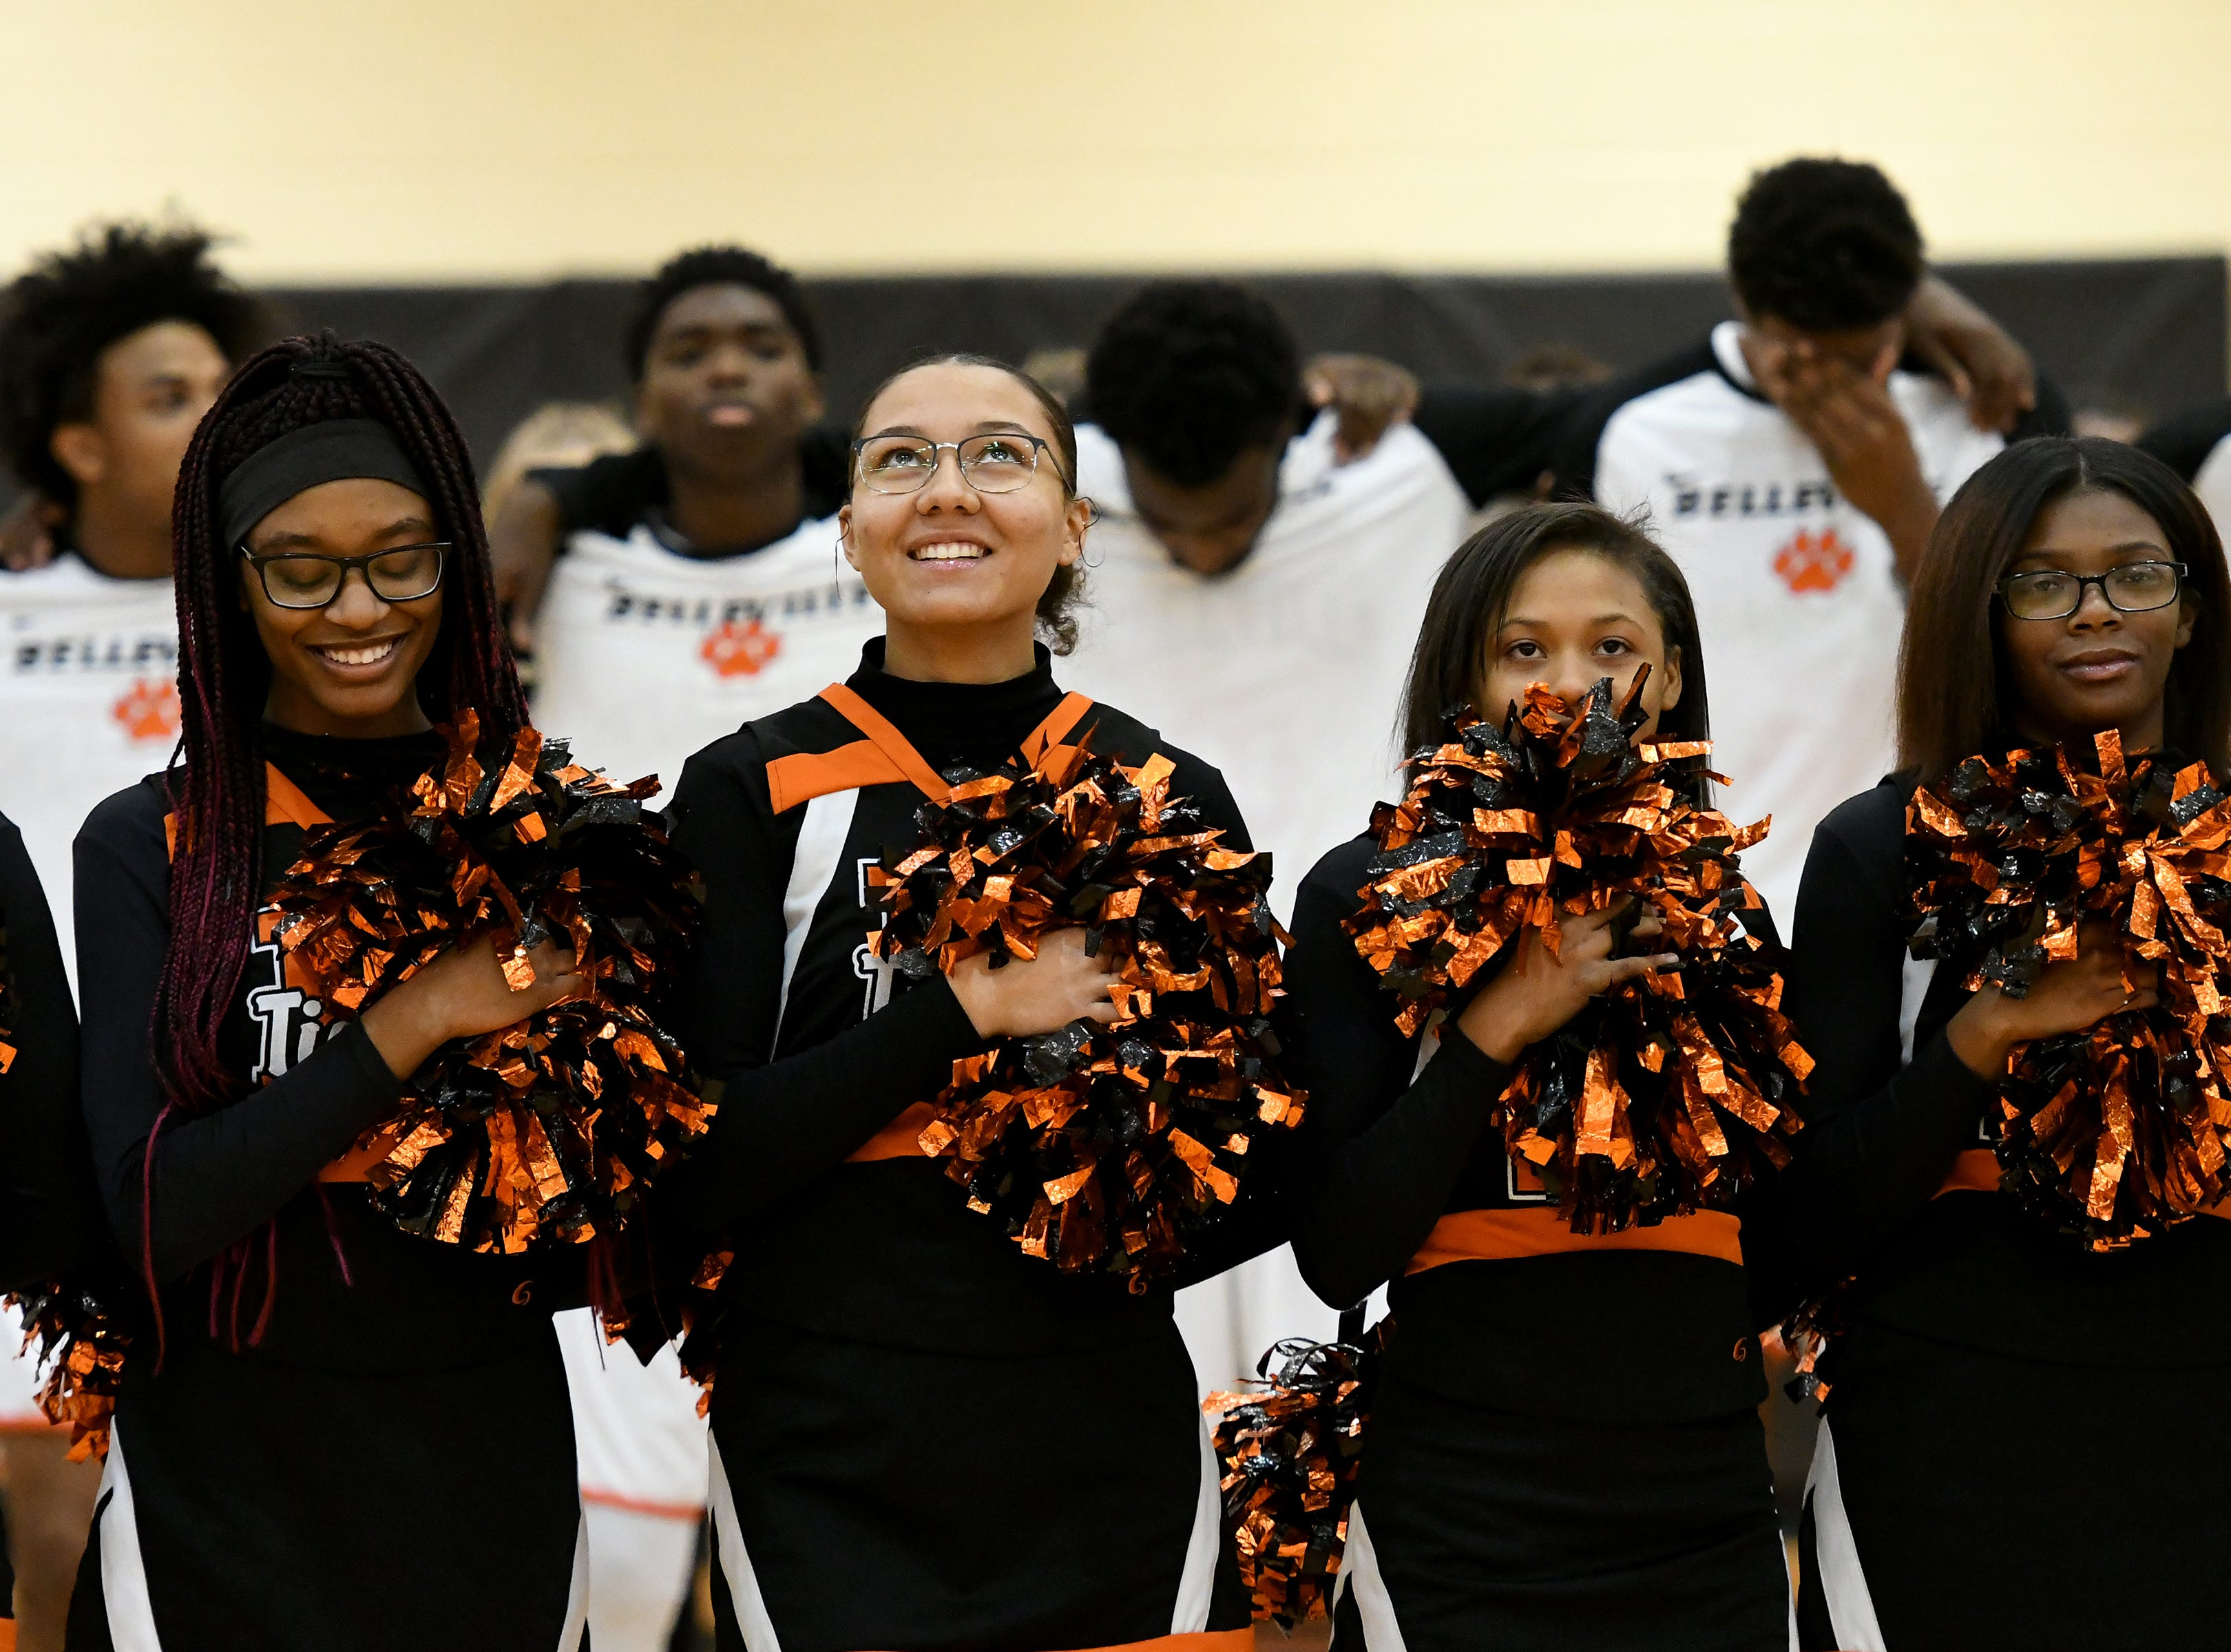 Belleville High School cheerleaders and players stand at attention for the National Anthem before their game with John Glenn High School.